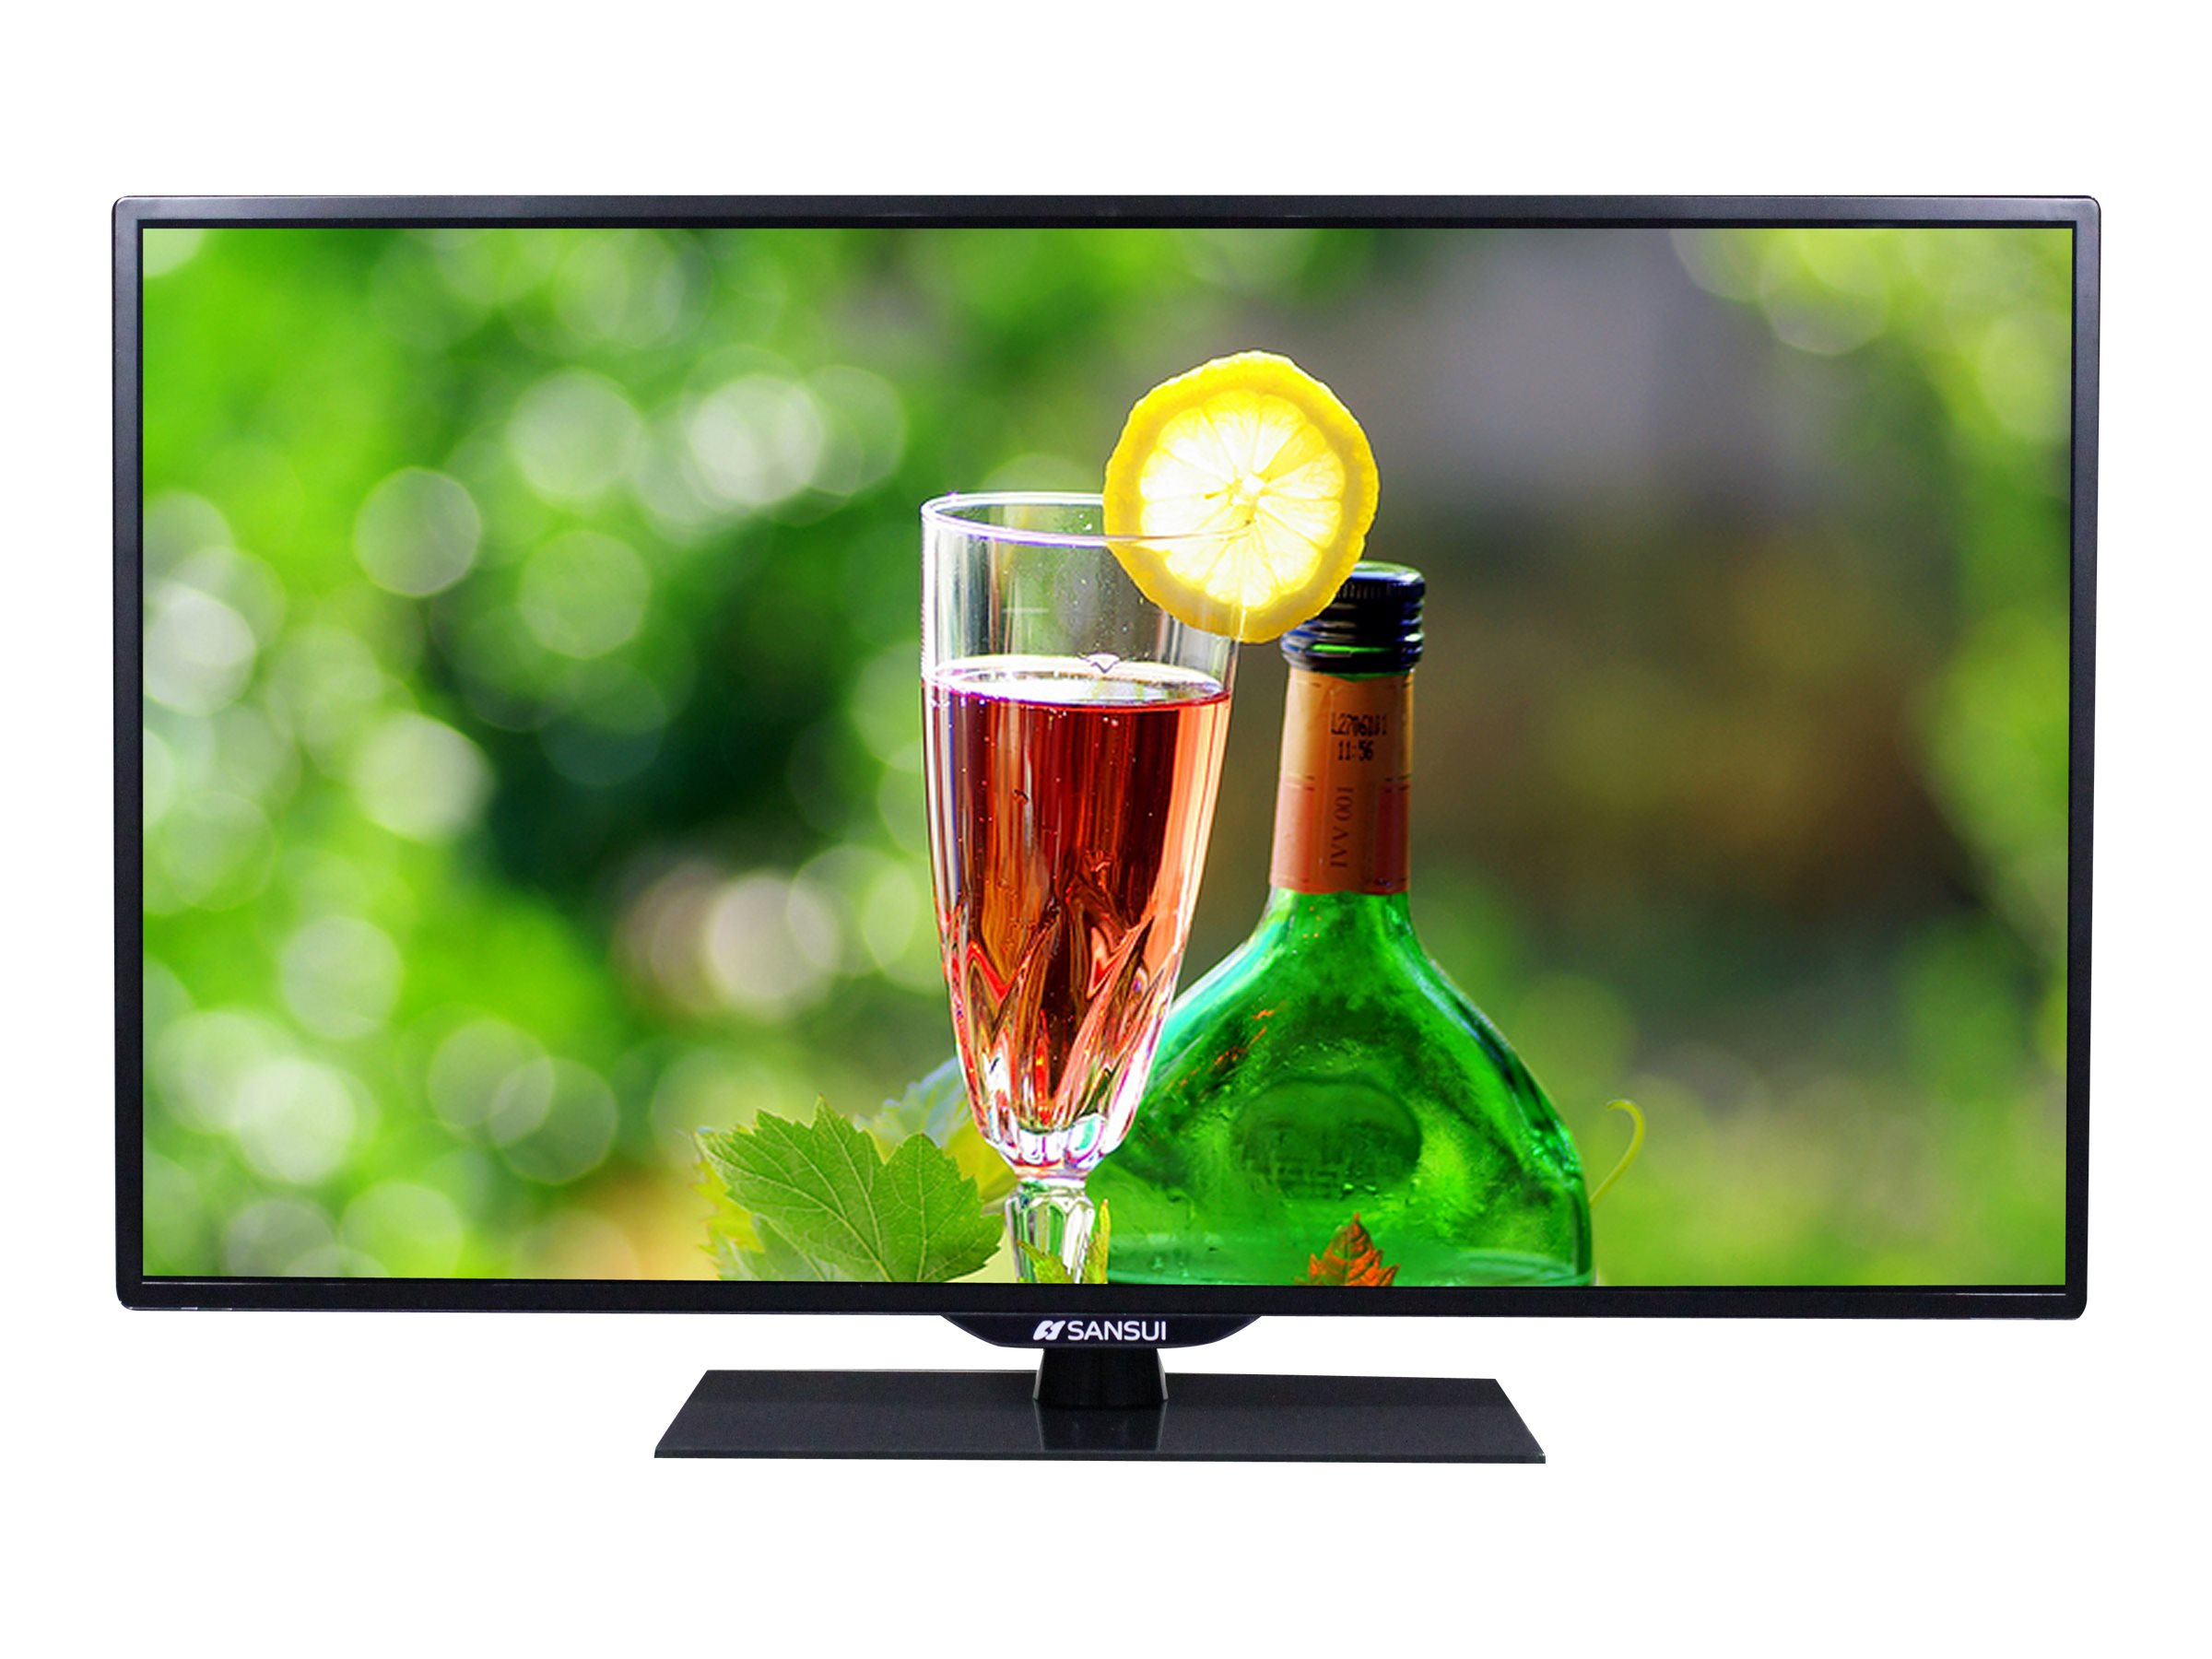 Sansui 39.5 SLED4015 Full HD LED-LCD TV, Black, SLED4015, 31951933, Televisions - LED-LCD Consumer